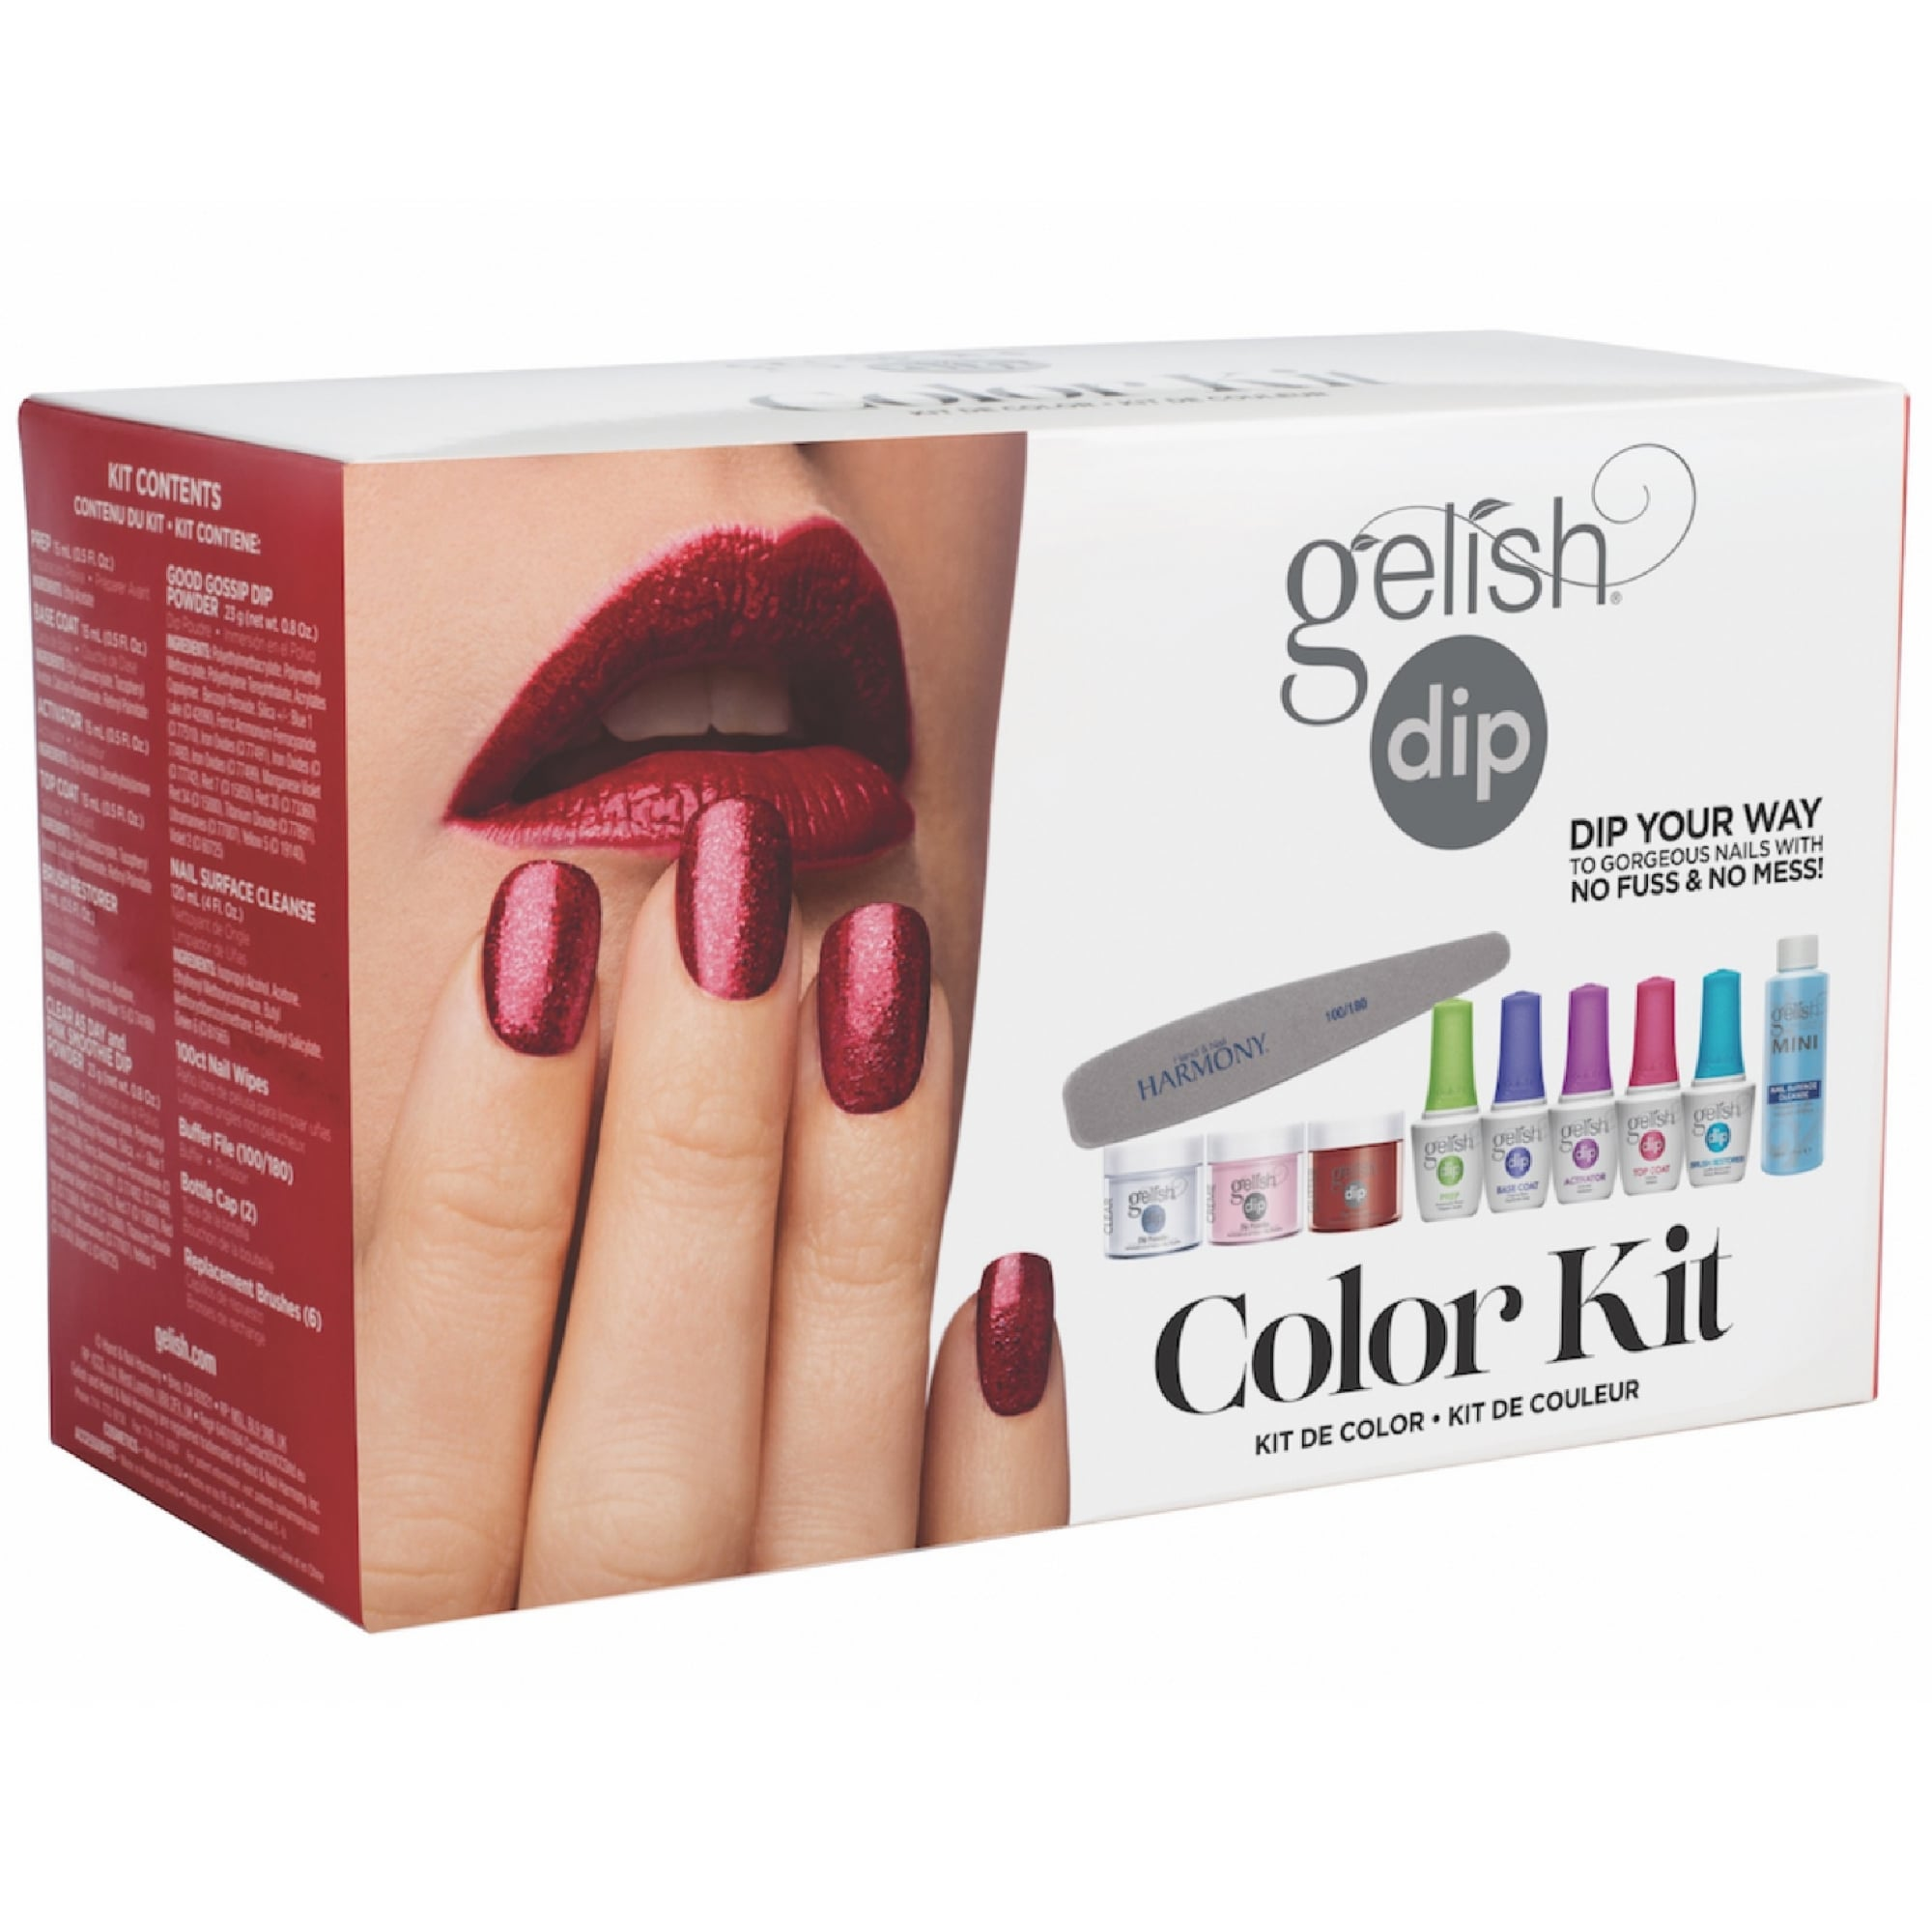 Nail Dipping System: Colour Kit (6 Piece Set